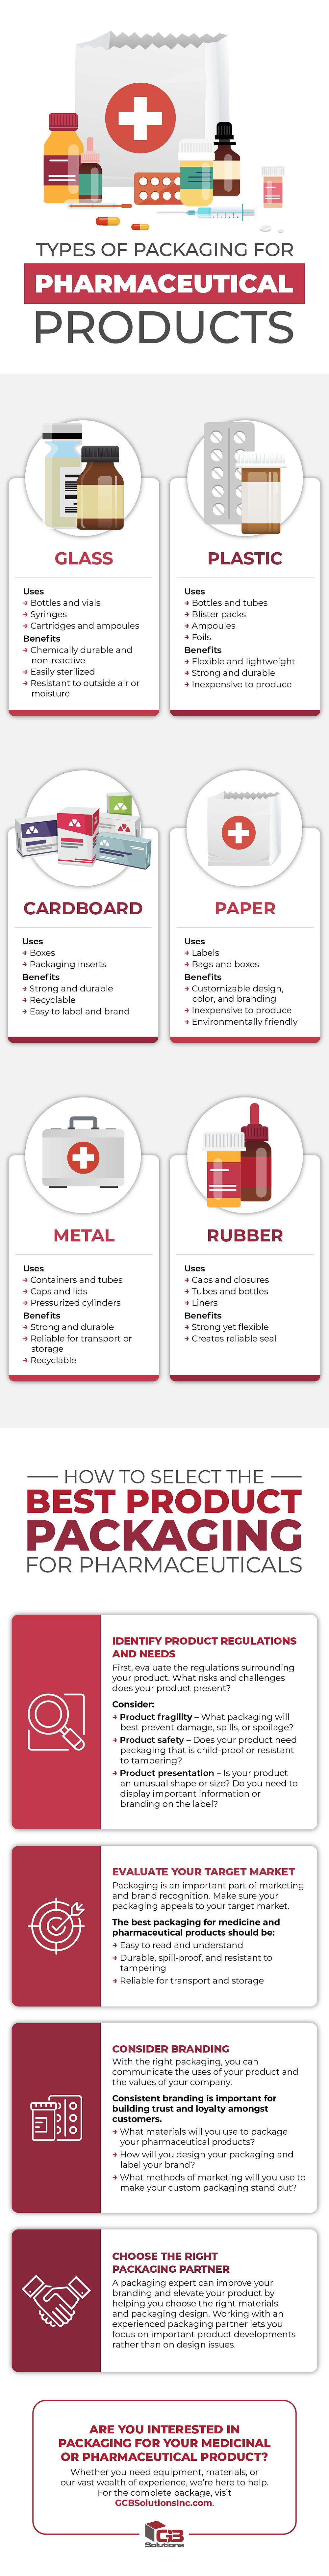 Types of Packaging for Pharmaceutical Products (Infographic)